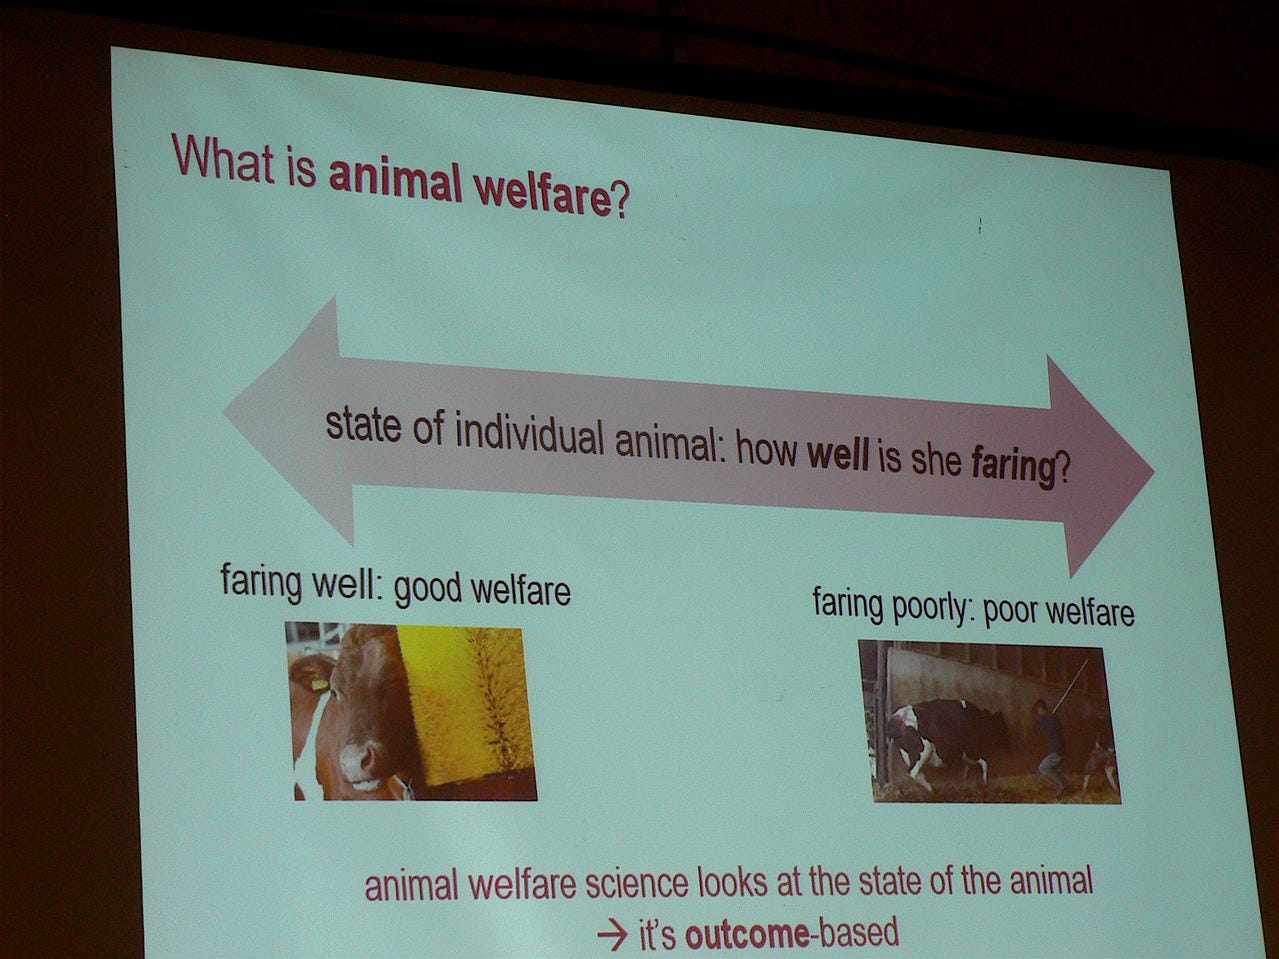 Animal welfare means many things and is often seen in the wrong way.